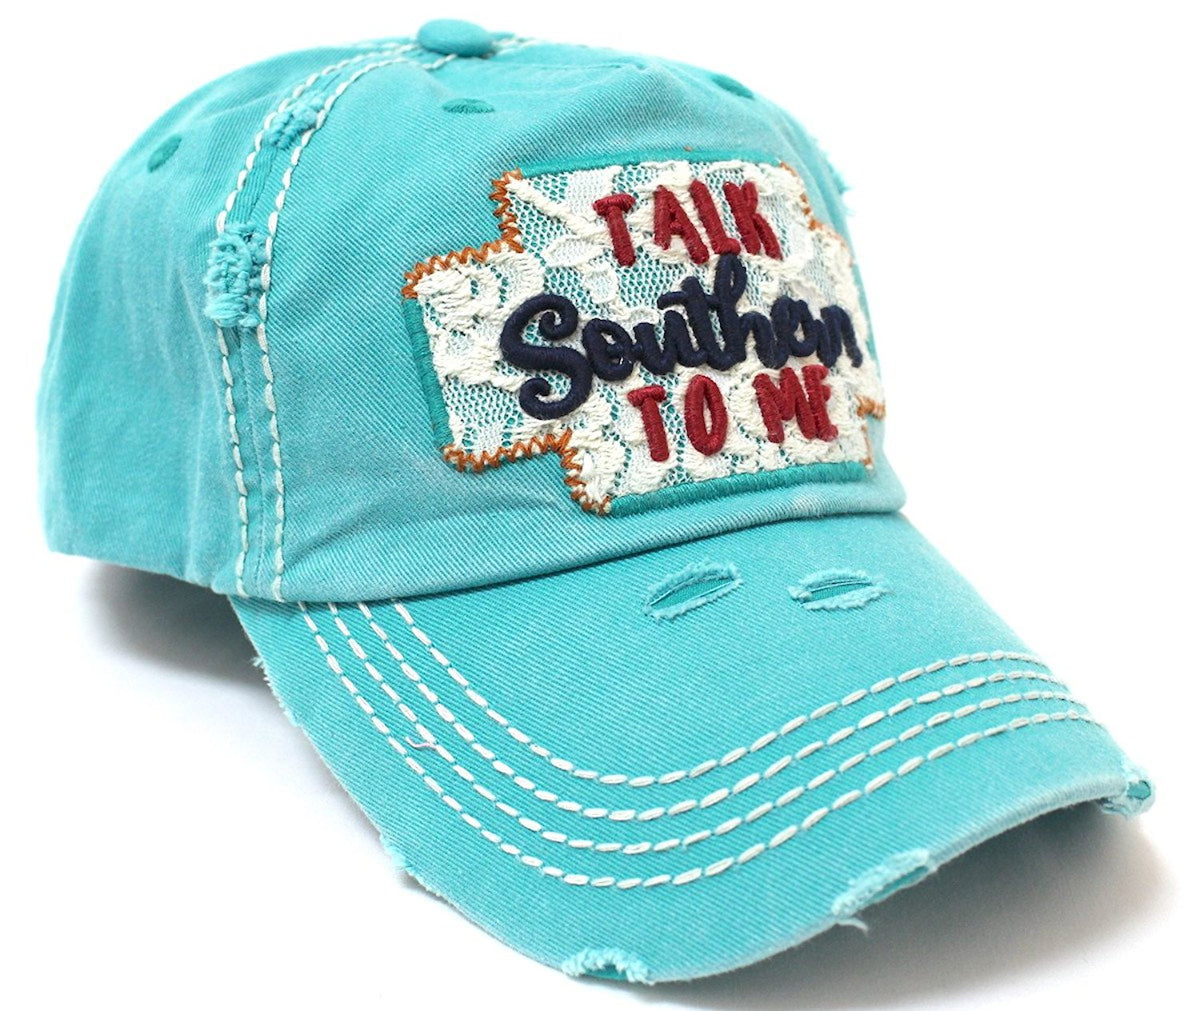 CAPS 'N VINTAGE Turquoise Distressed Talk Southern To Me Lace Embroidery Baseball Hat - Caps 'N Vintage